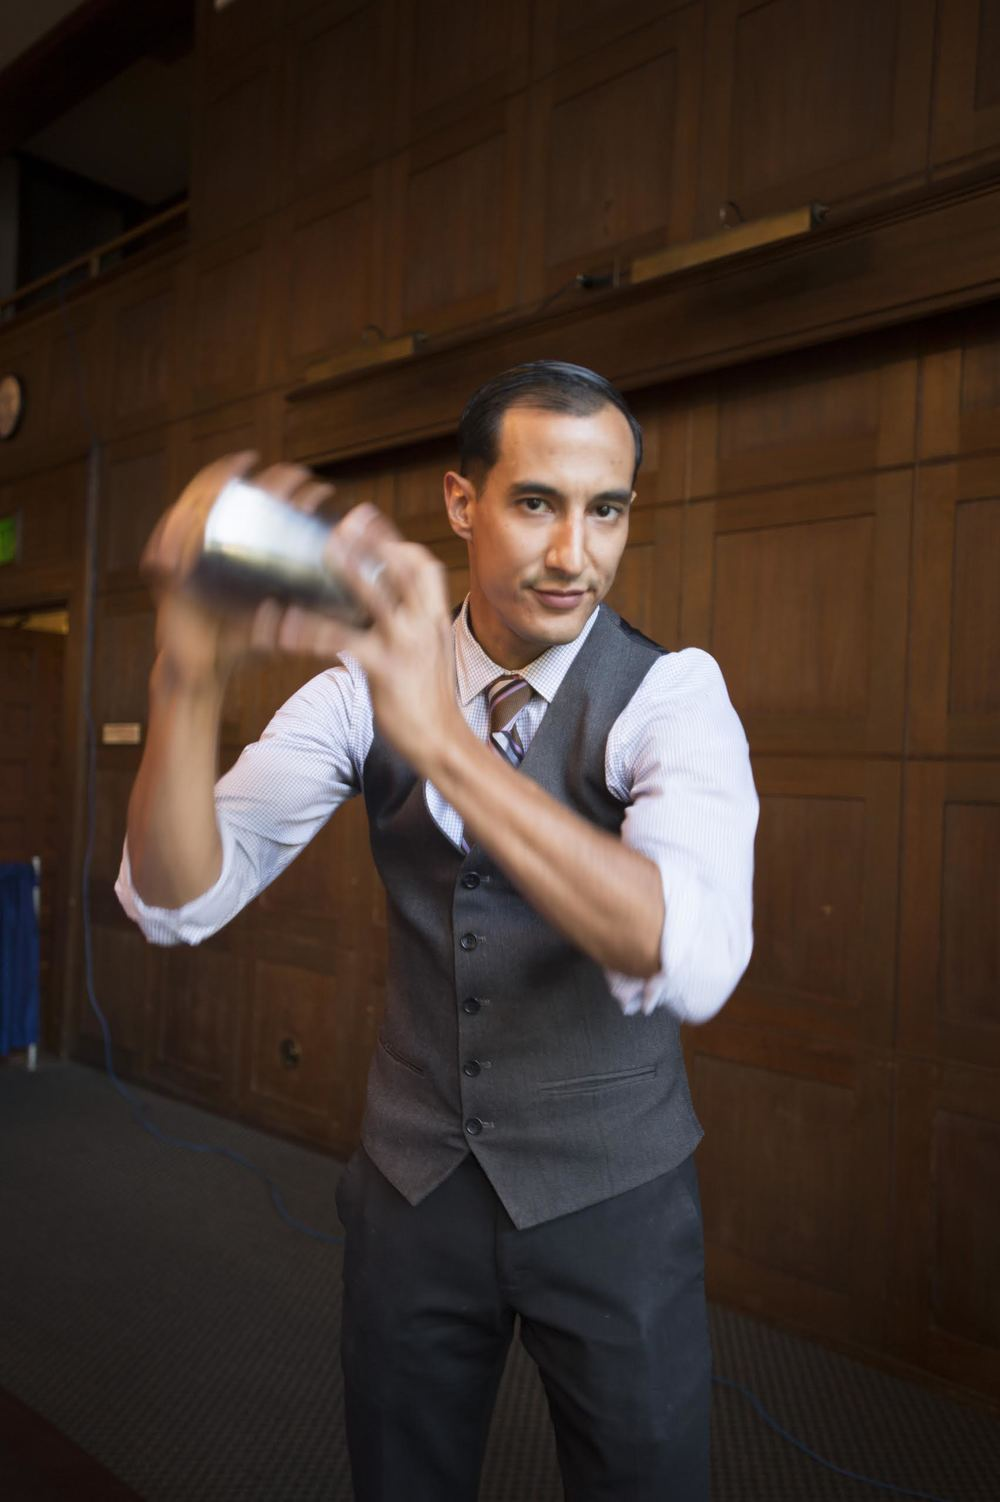 Tony Gurdian, Lead Barman for Imperial giving a cocktail a shake